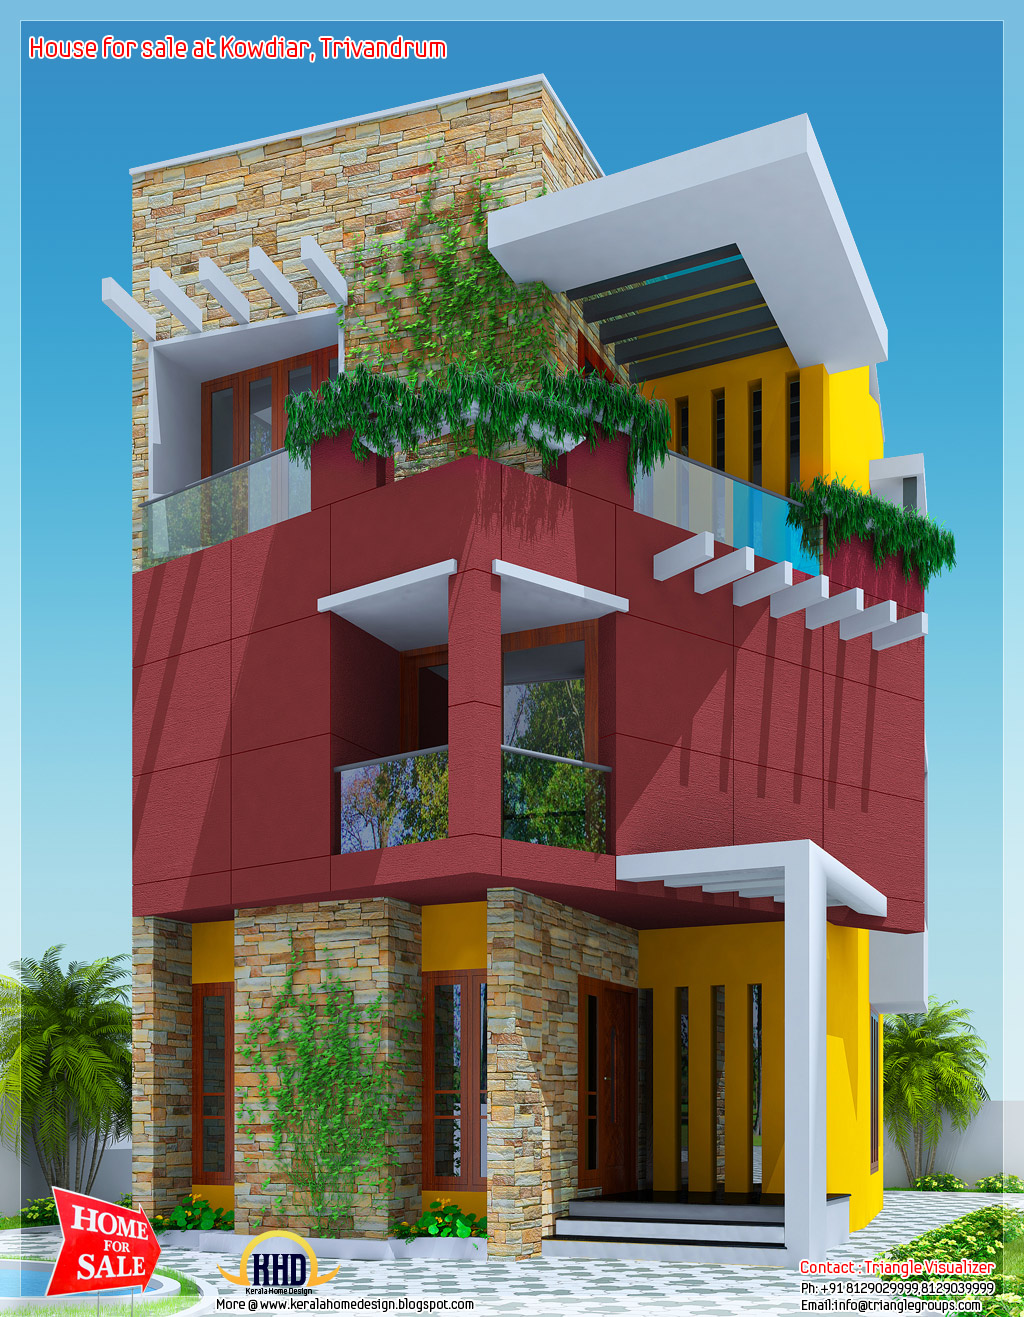 3 floor house for sale at kowdiar trivandrum kerala for Mansion plans for sale